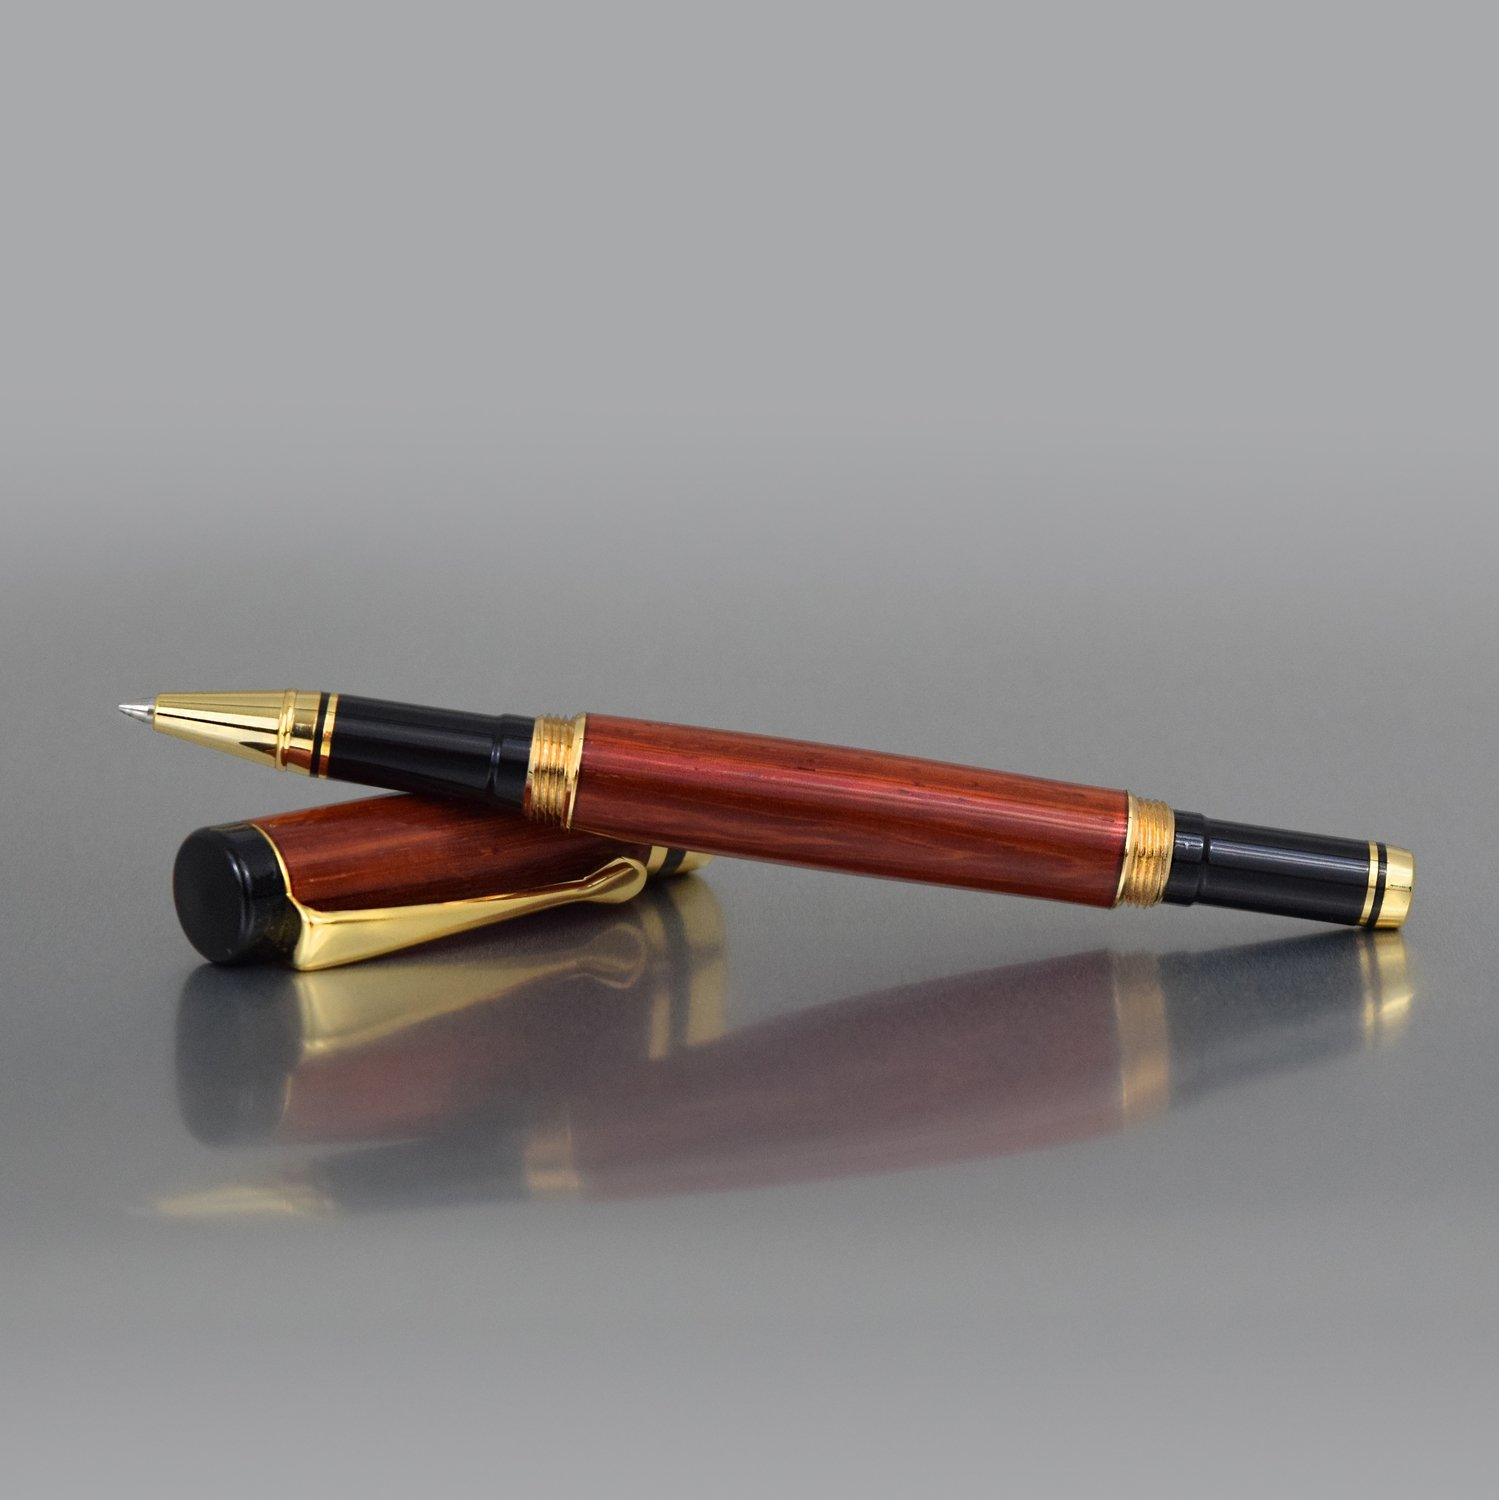 Executive Rollerball Pen - Padauk Wood